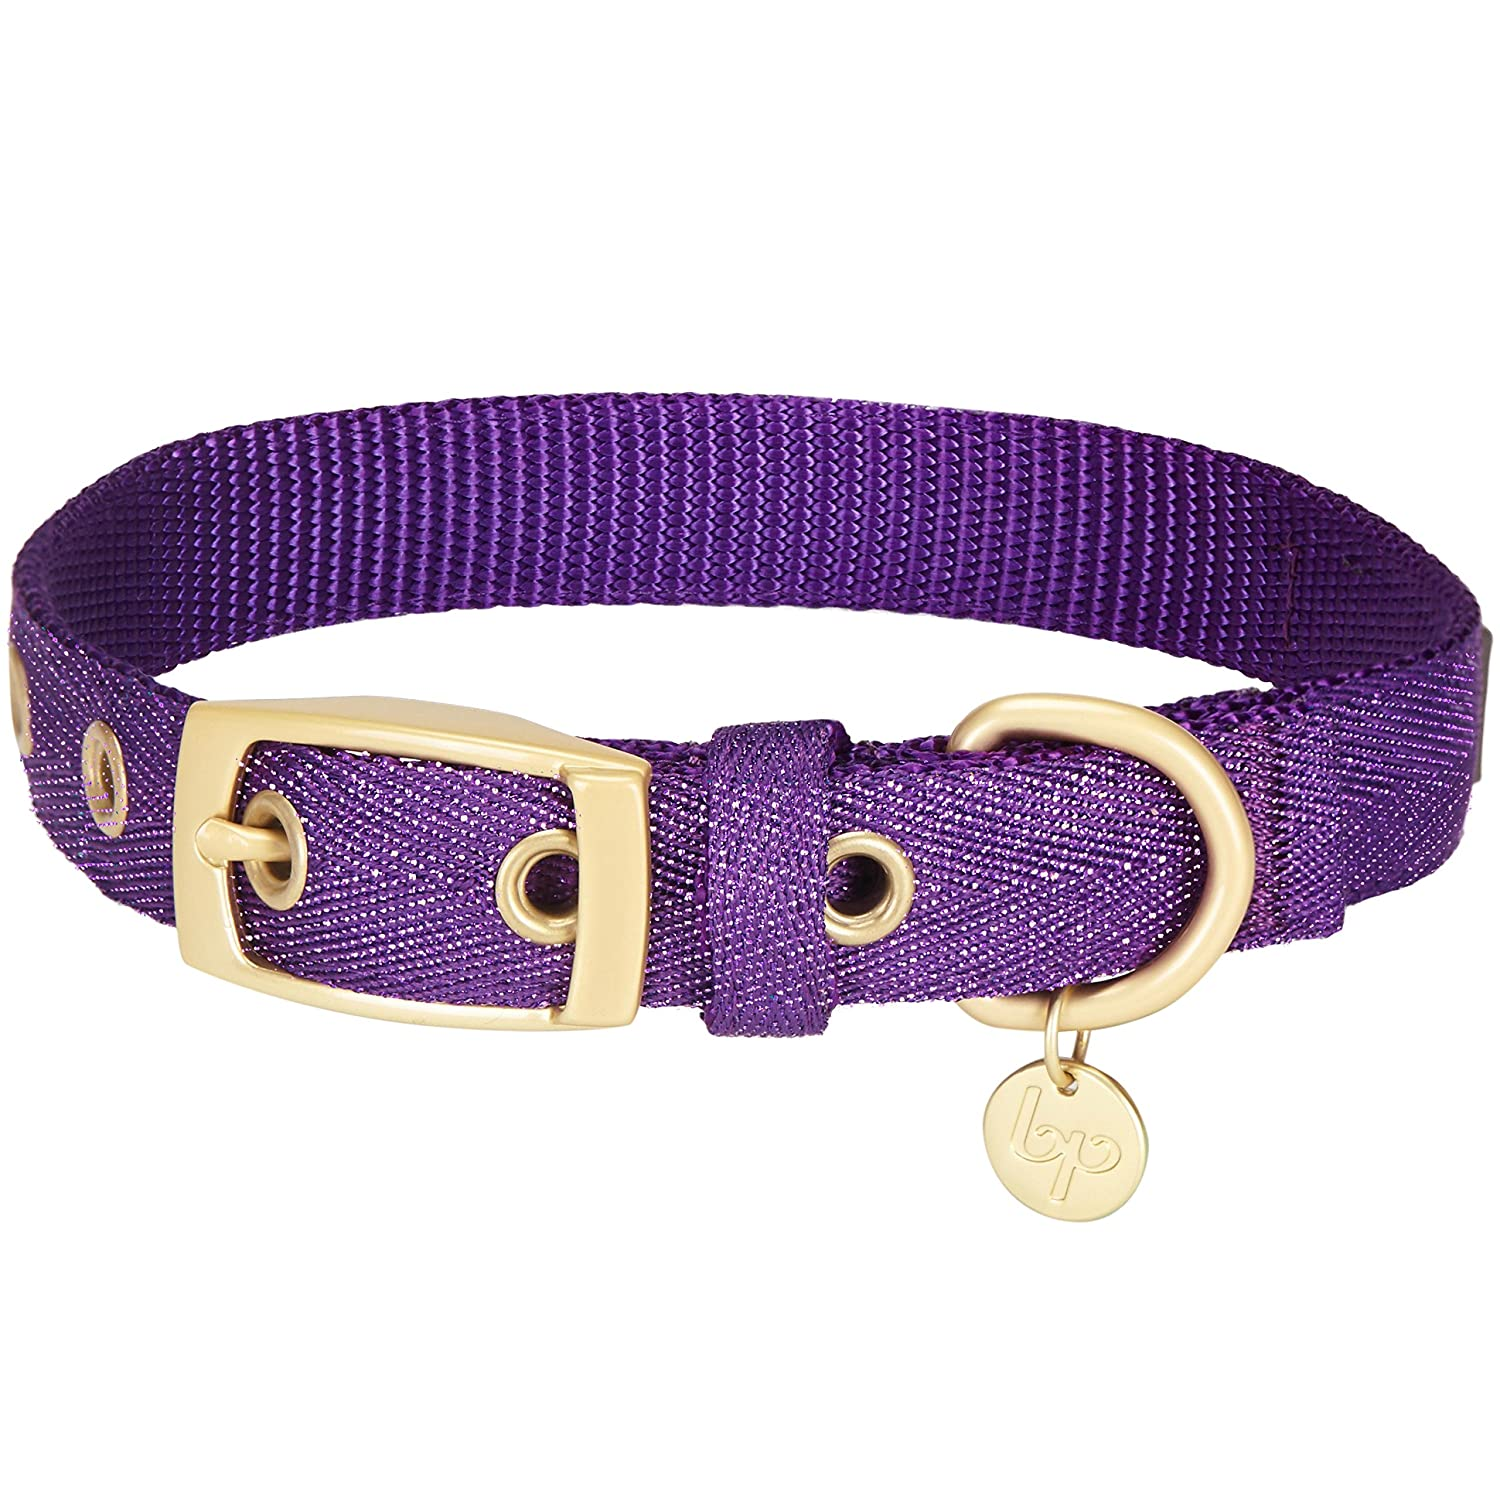 Pack of 1 Dazzling Tinsel Purple (7.5\ Pack of 1 Dazzling Tinsel Purple (7.5\ blueeberry Pet 2019 New 6 colors The Most Coveted Designer Mixed Metallic Thread Dog Collar in Dazzling Tinsel Purple with Metal Buckle, Neck 7.5-10 , Adjustable Collars for Dog